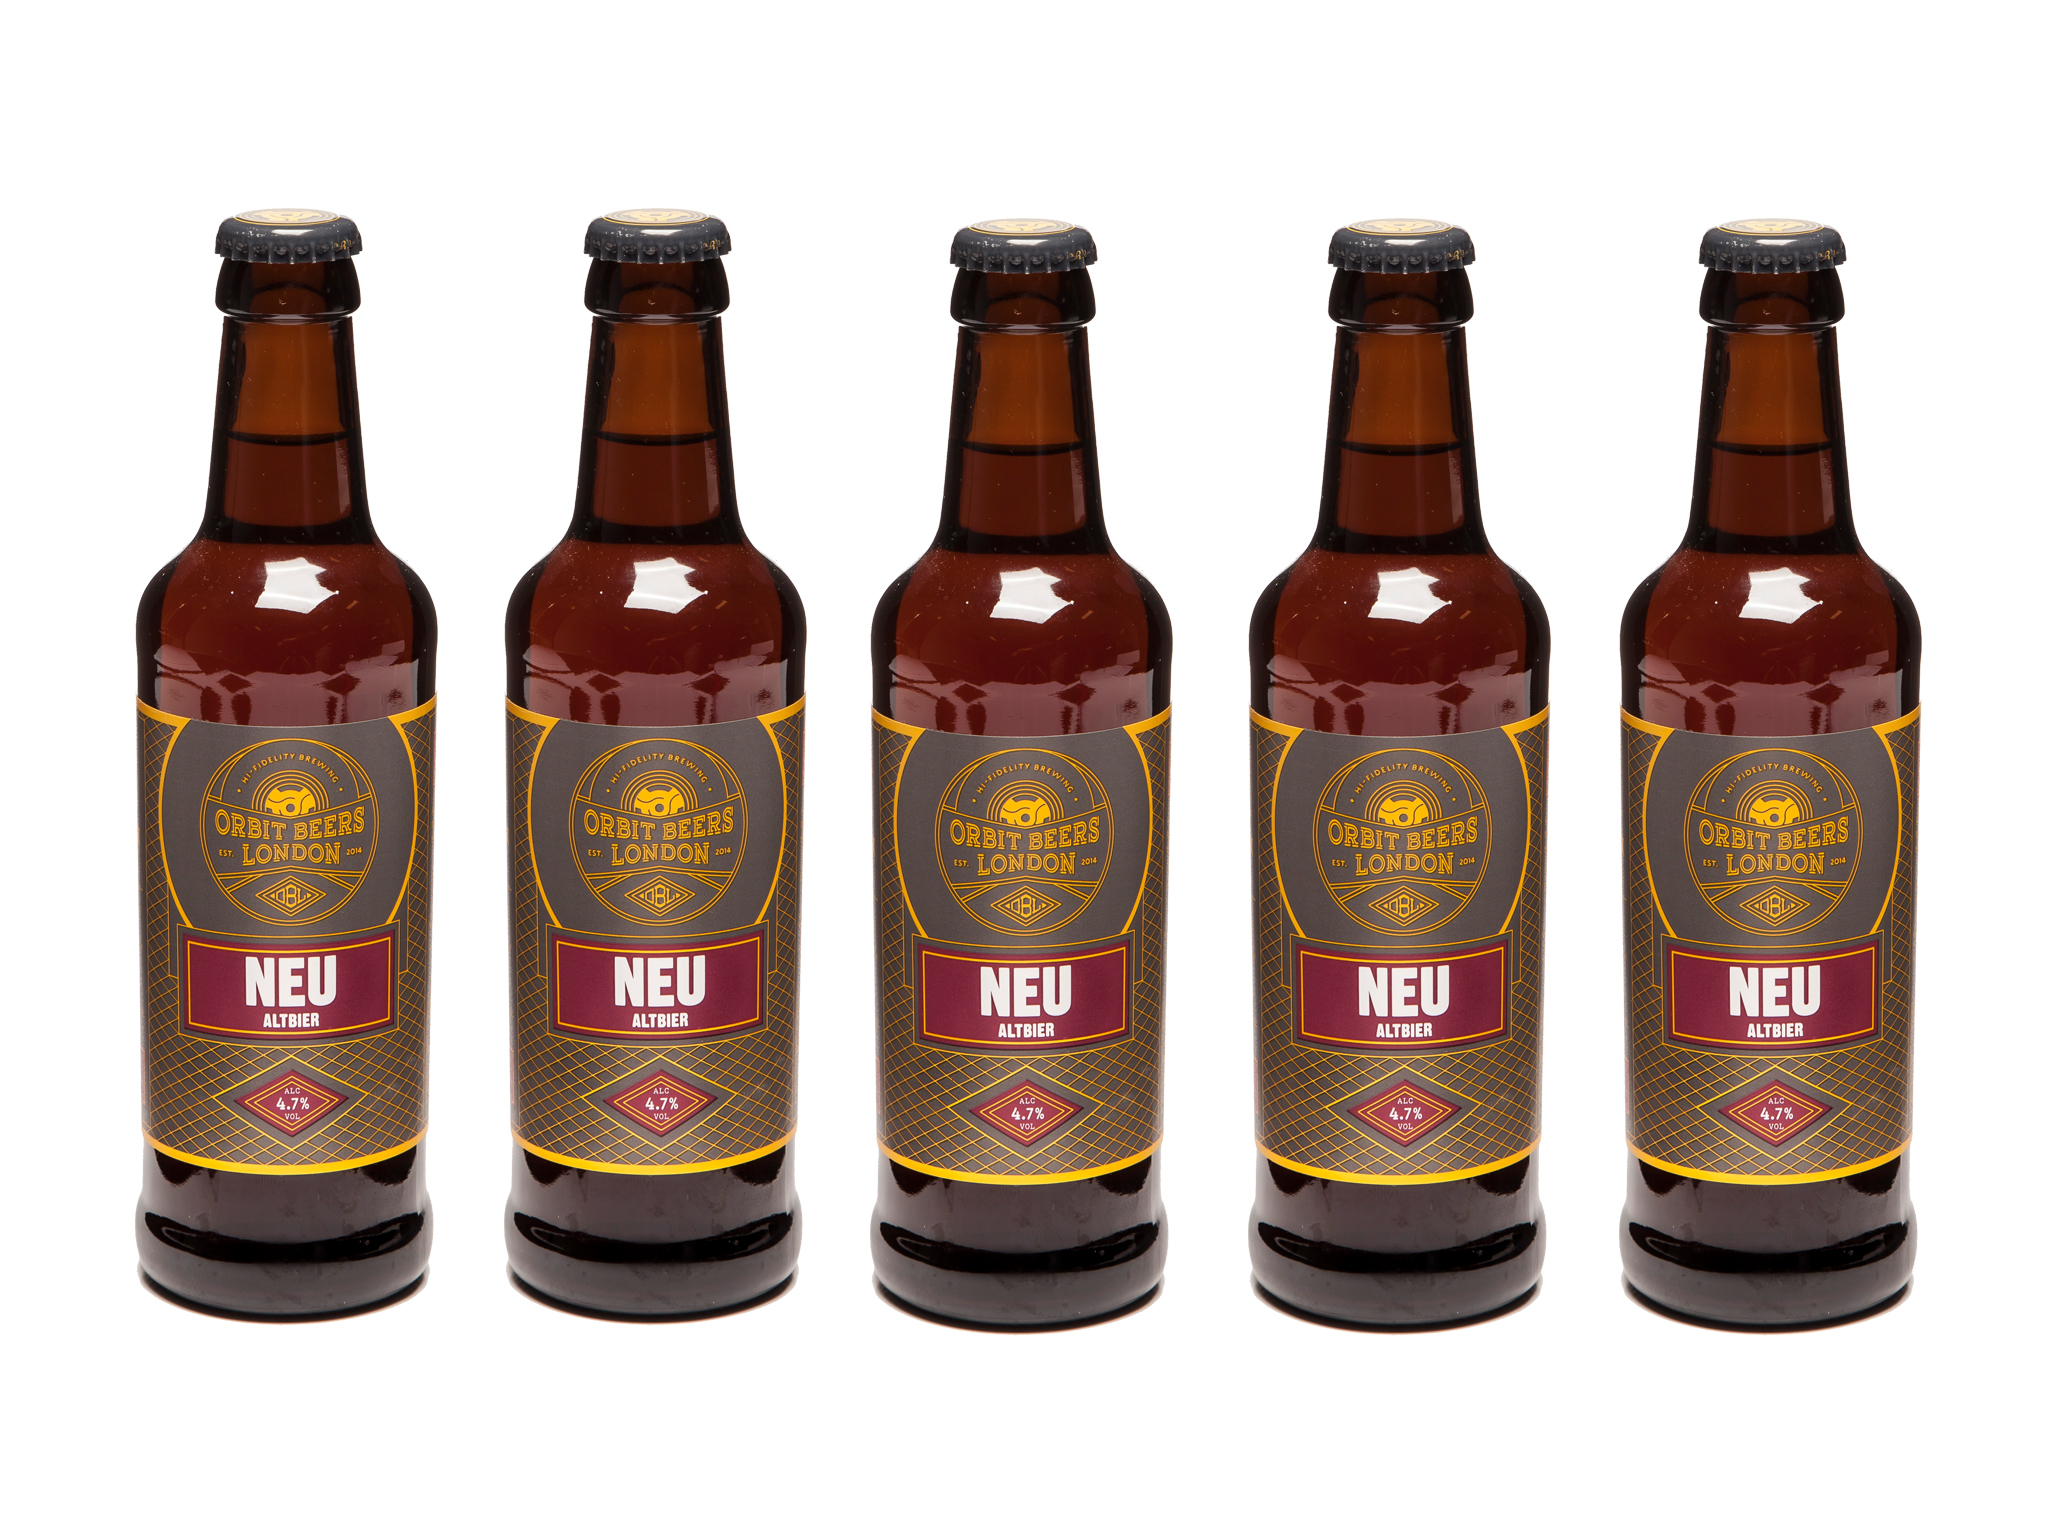 London's best craft beer, Neu